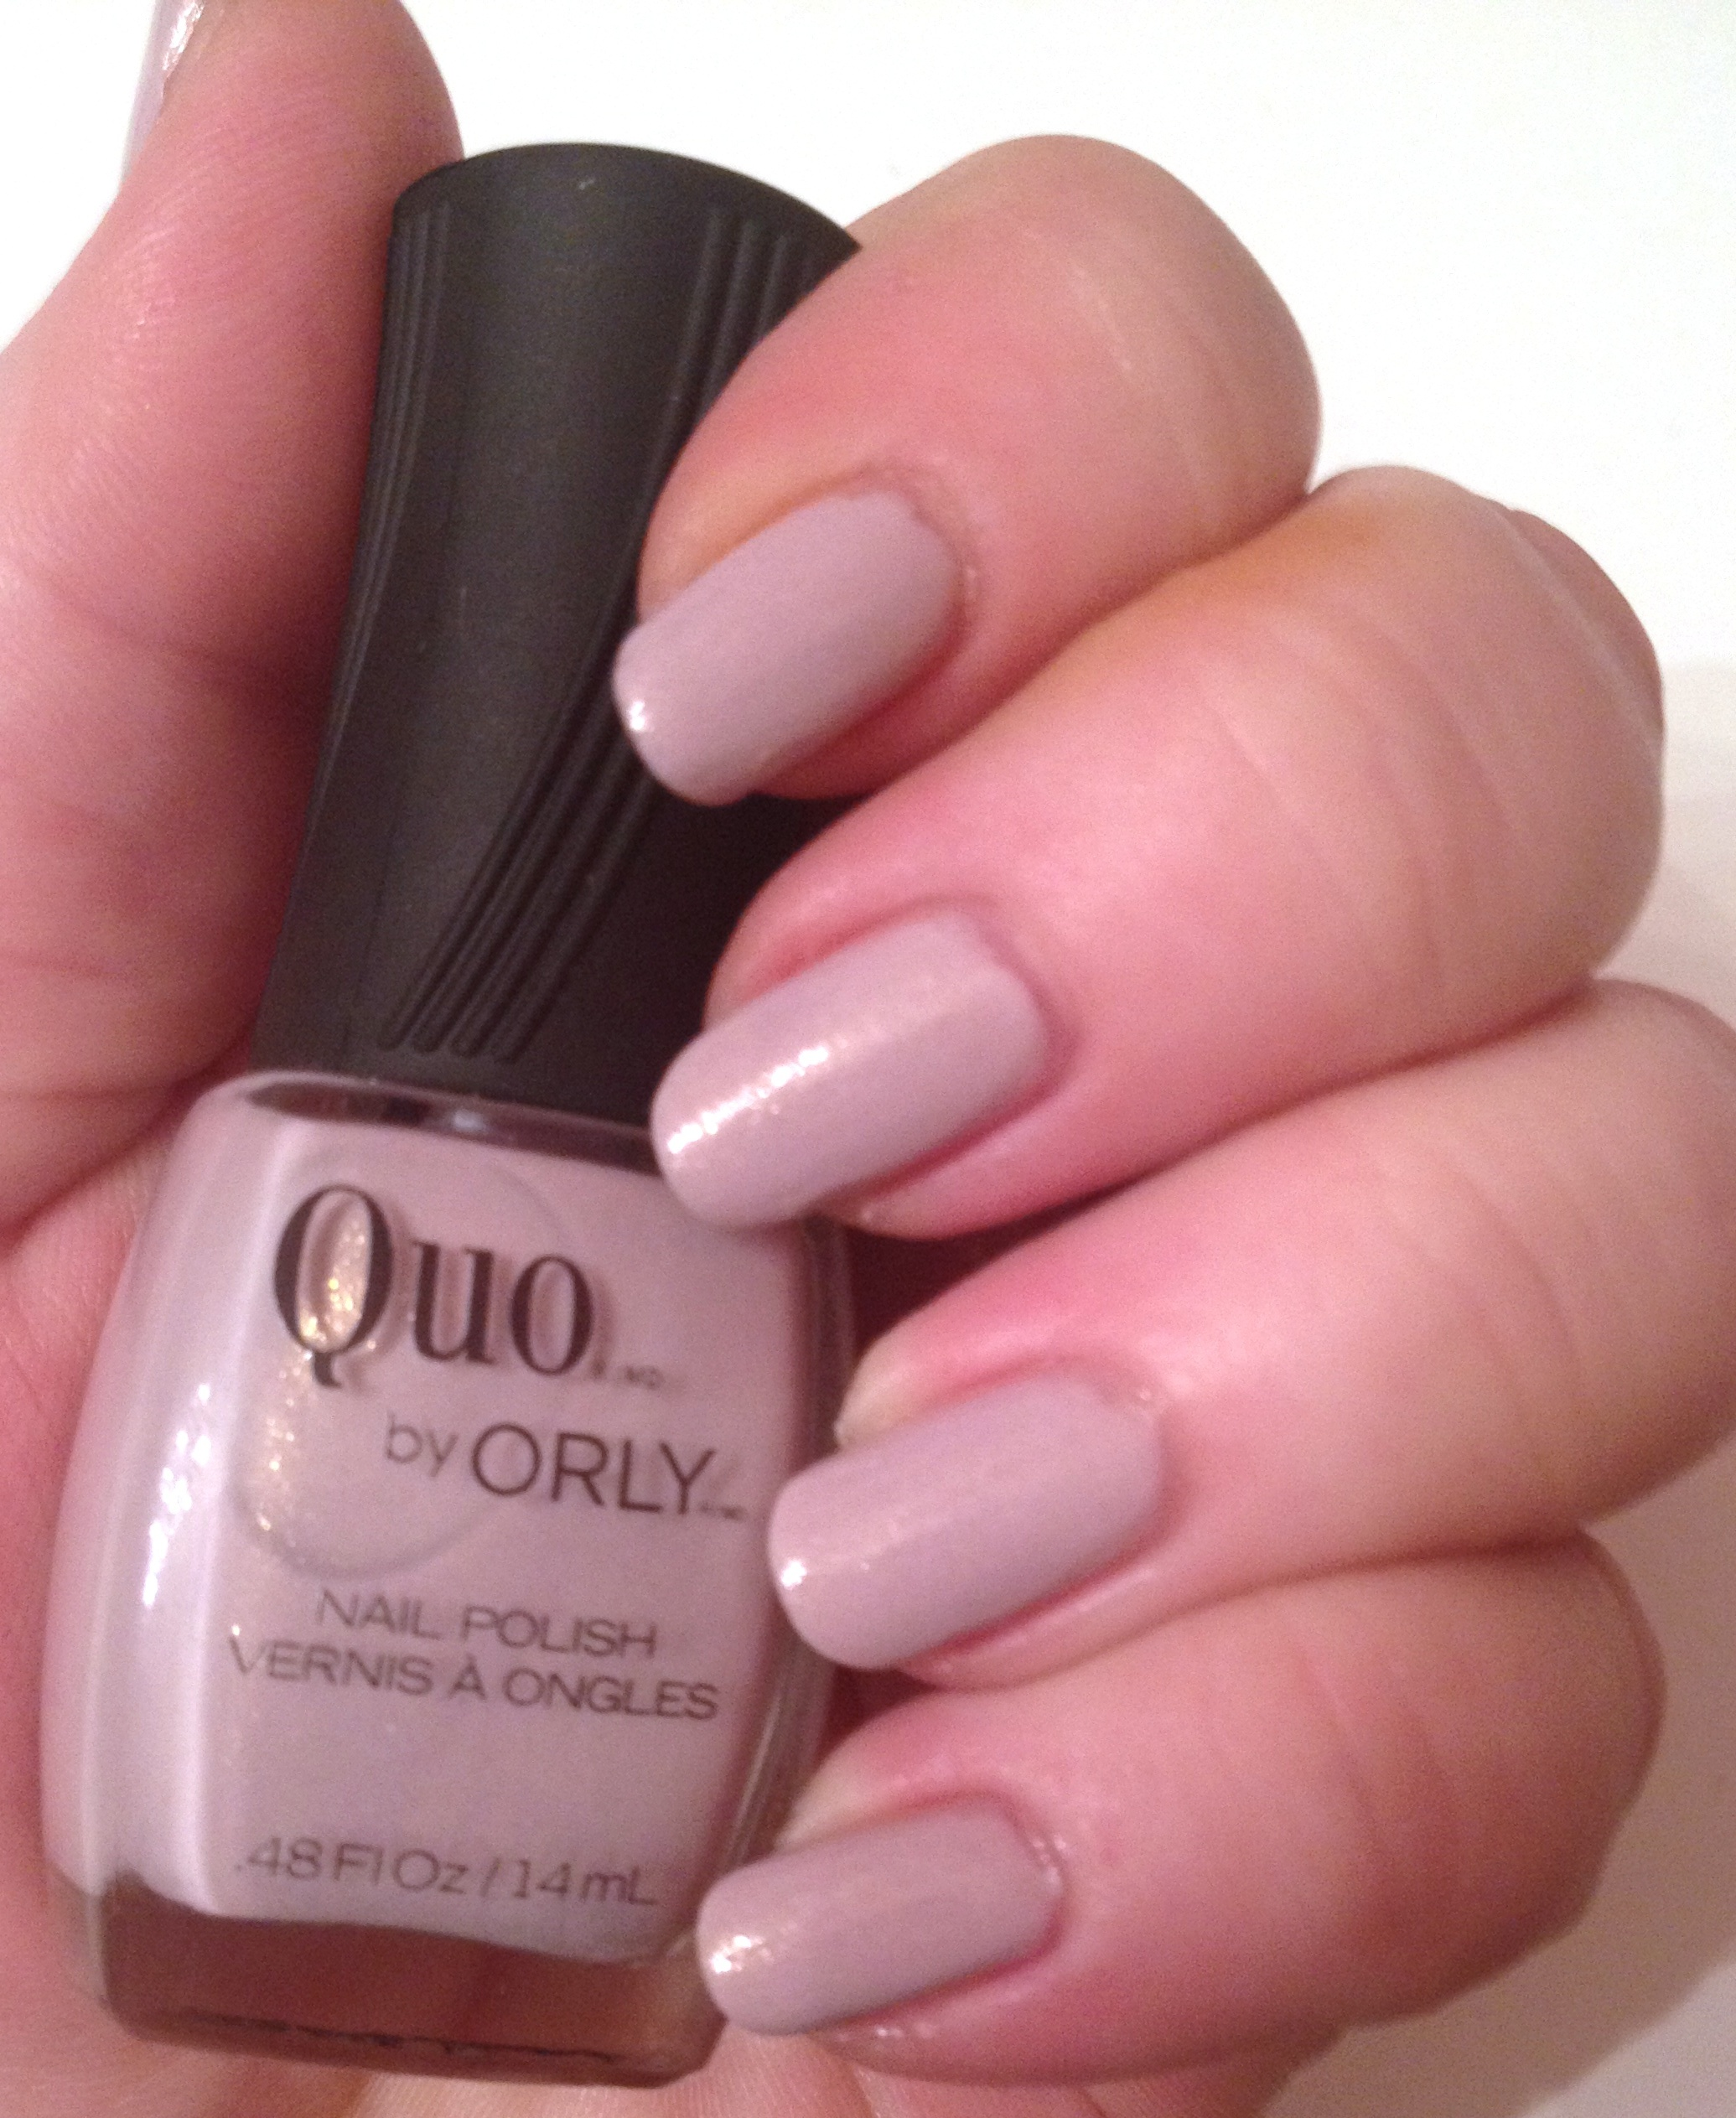 Quo by Orly Spring 2014 Nail Polish Review – Makeup Most Wanted